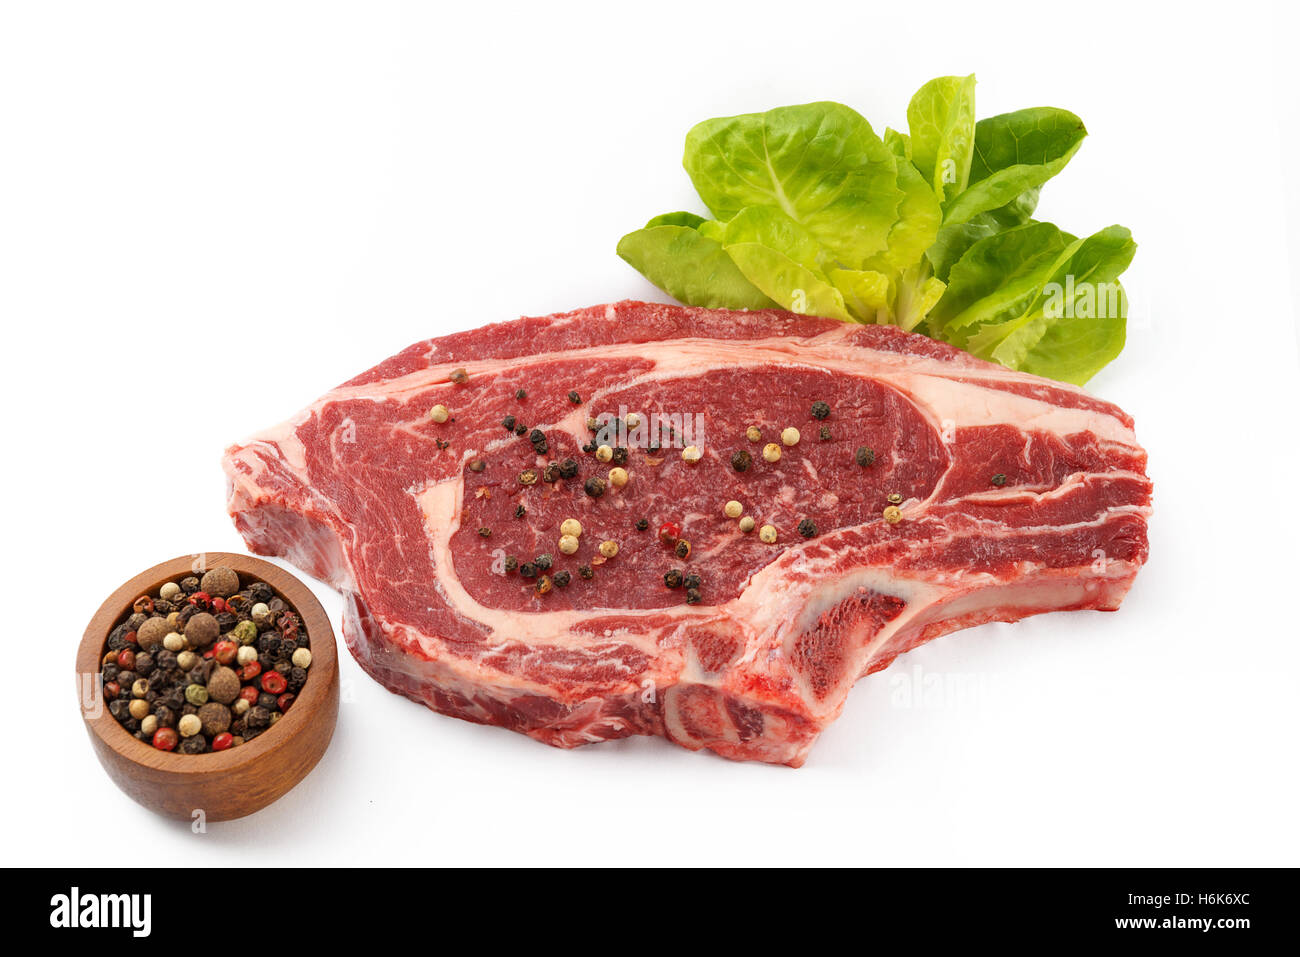 juicy organic raw steak on a isolated white background - Stock Image